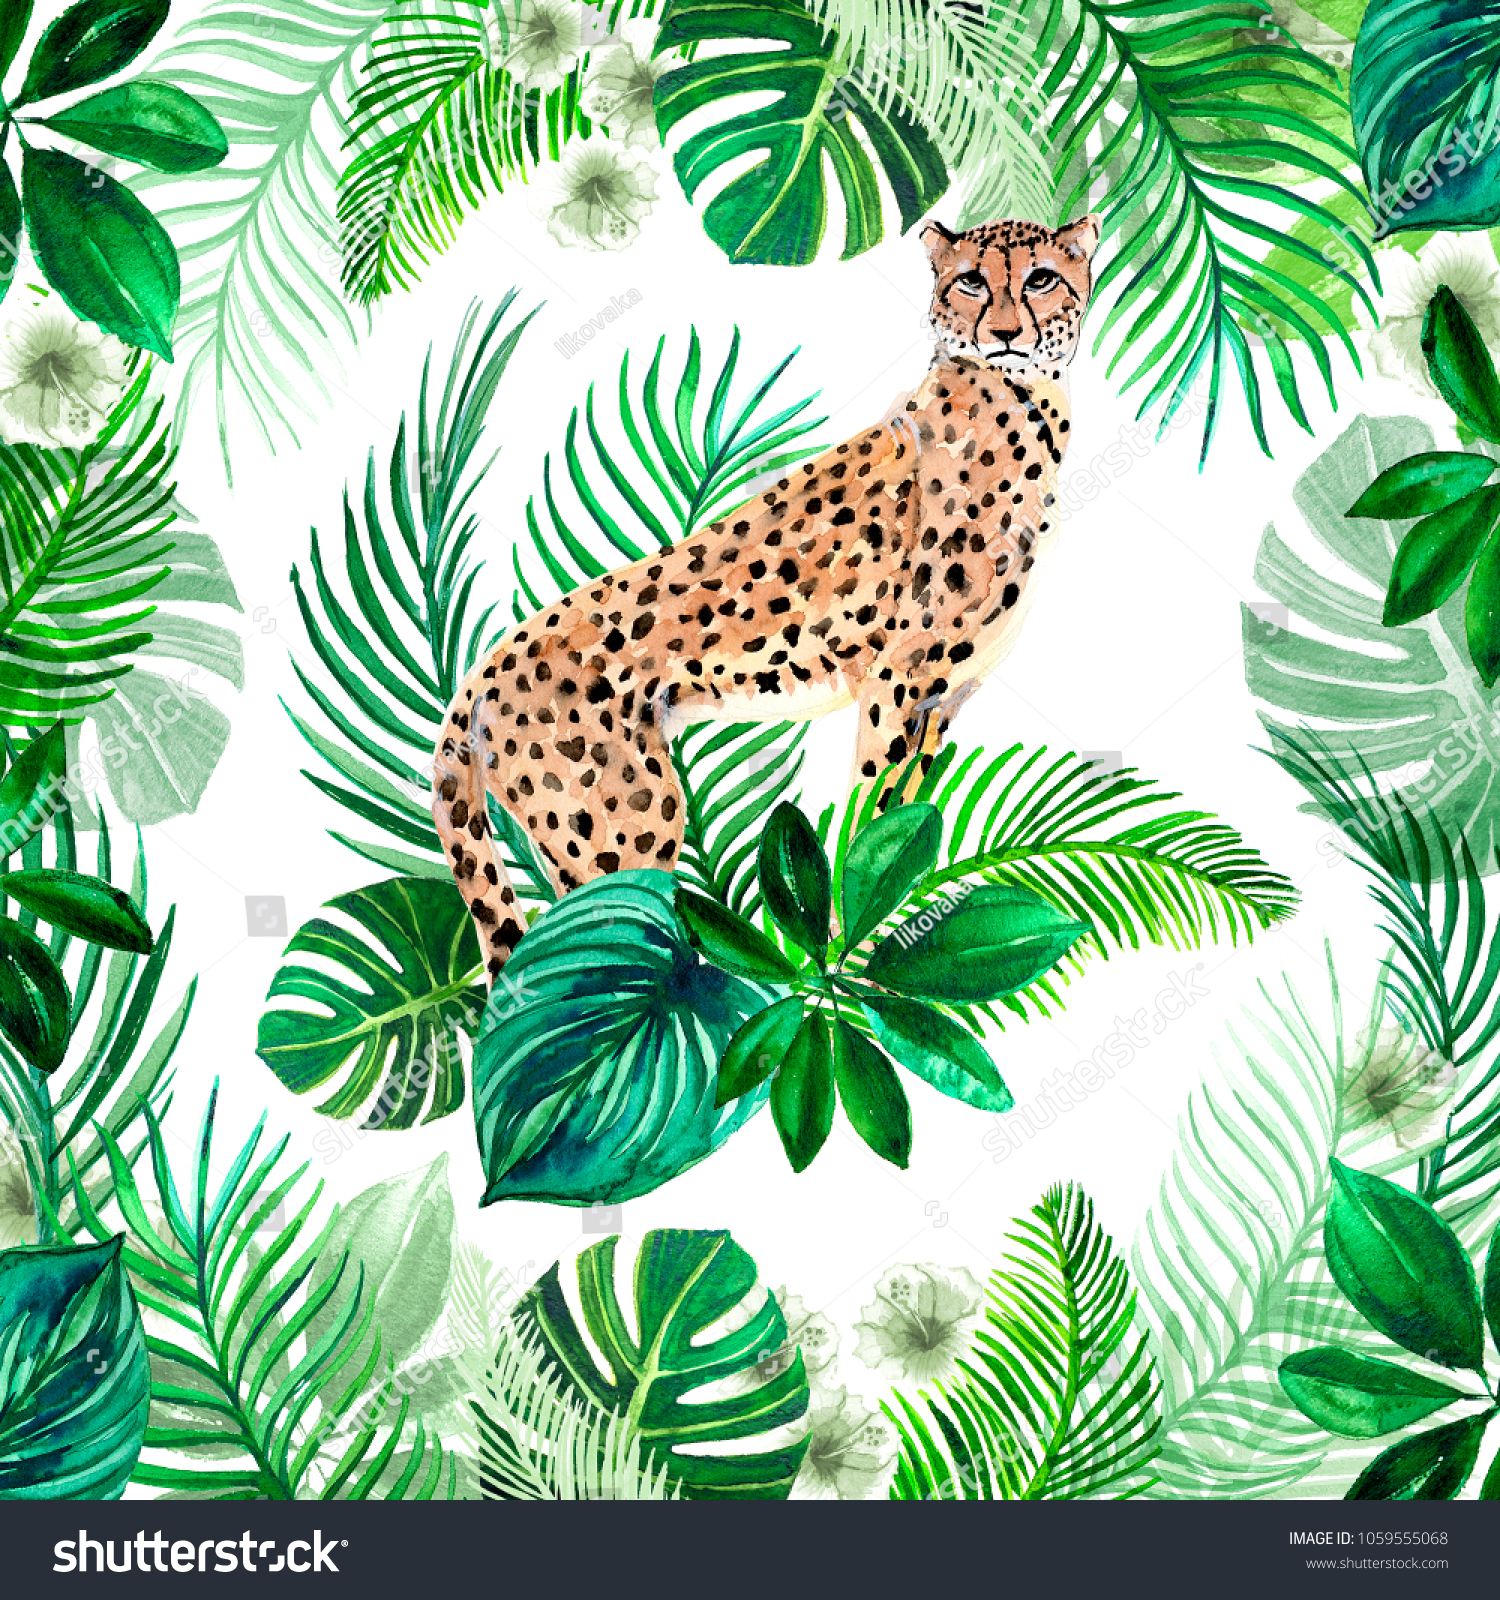 Animal Design Royalty Free Stock Illustration Of Design Texture Watercolor